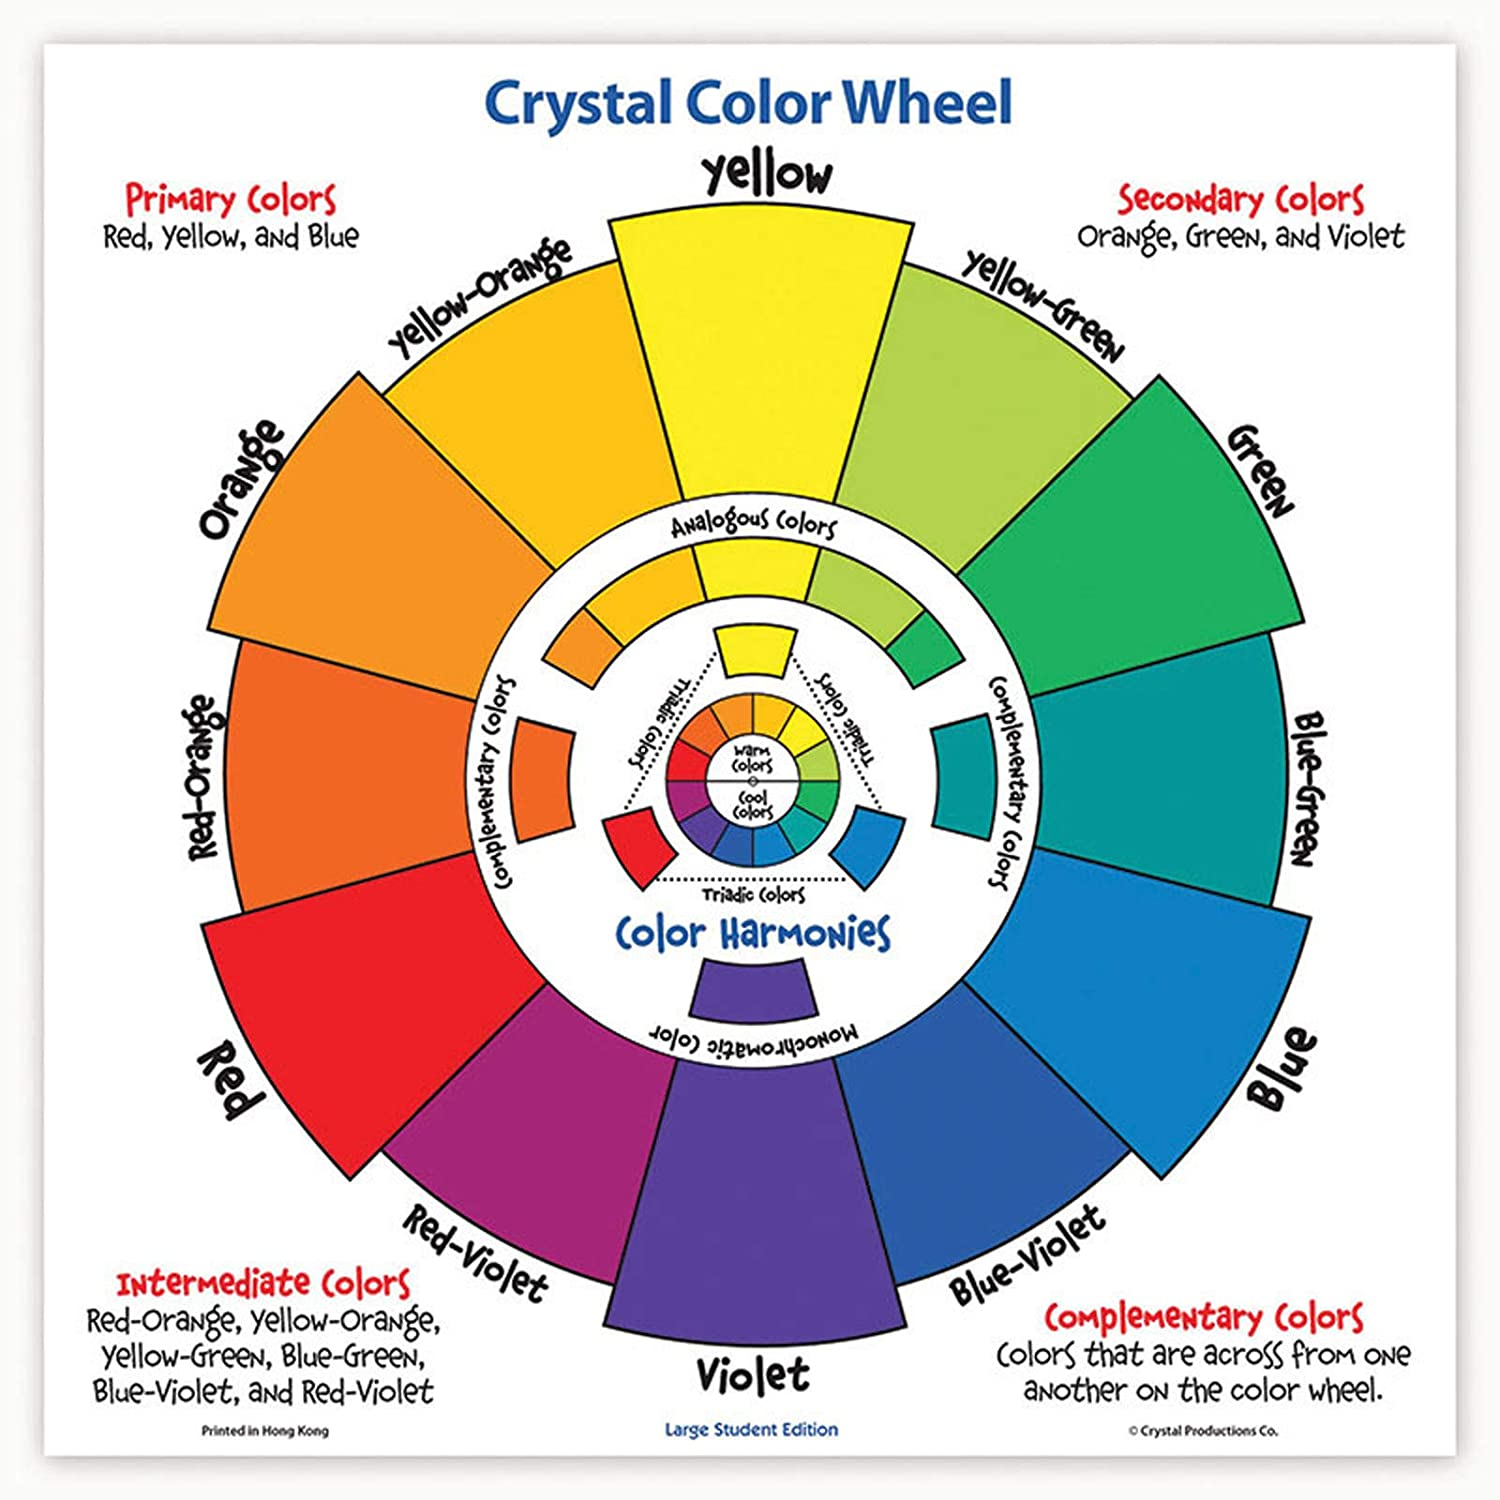 CRYSTAL PRODUCTIONS CO. CRP7230 LARGE STUDENT COLOR WHEEL: Amazon ...